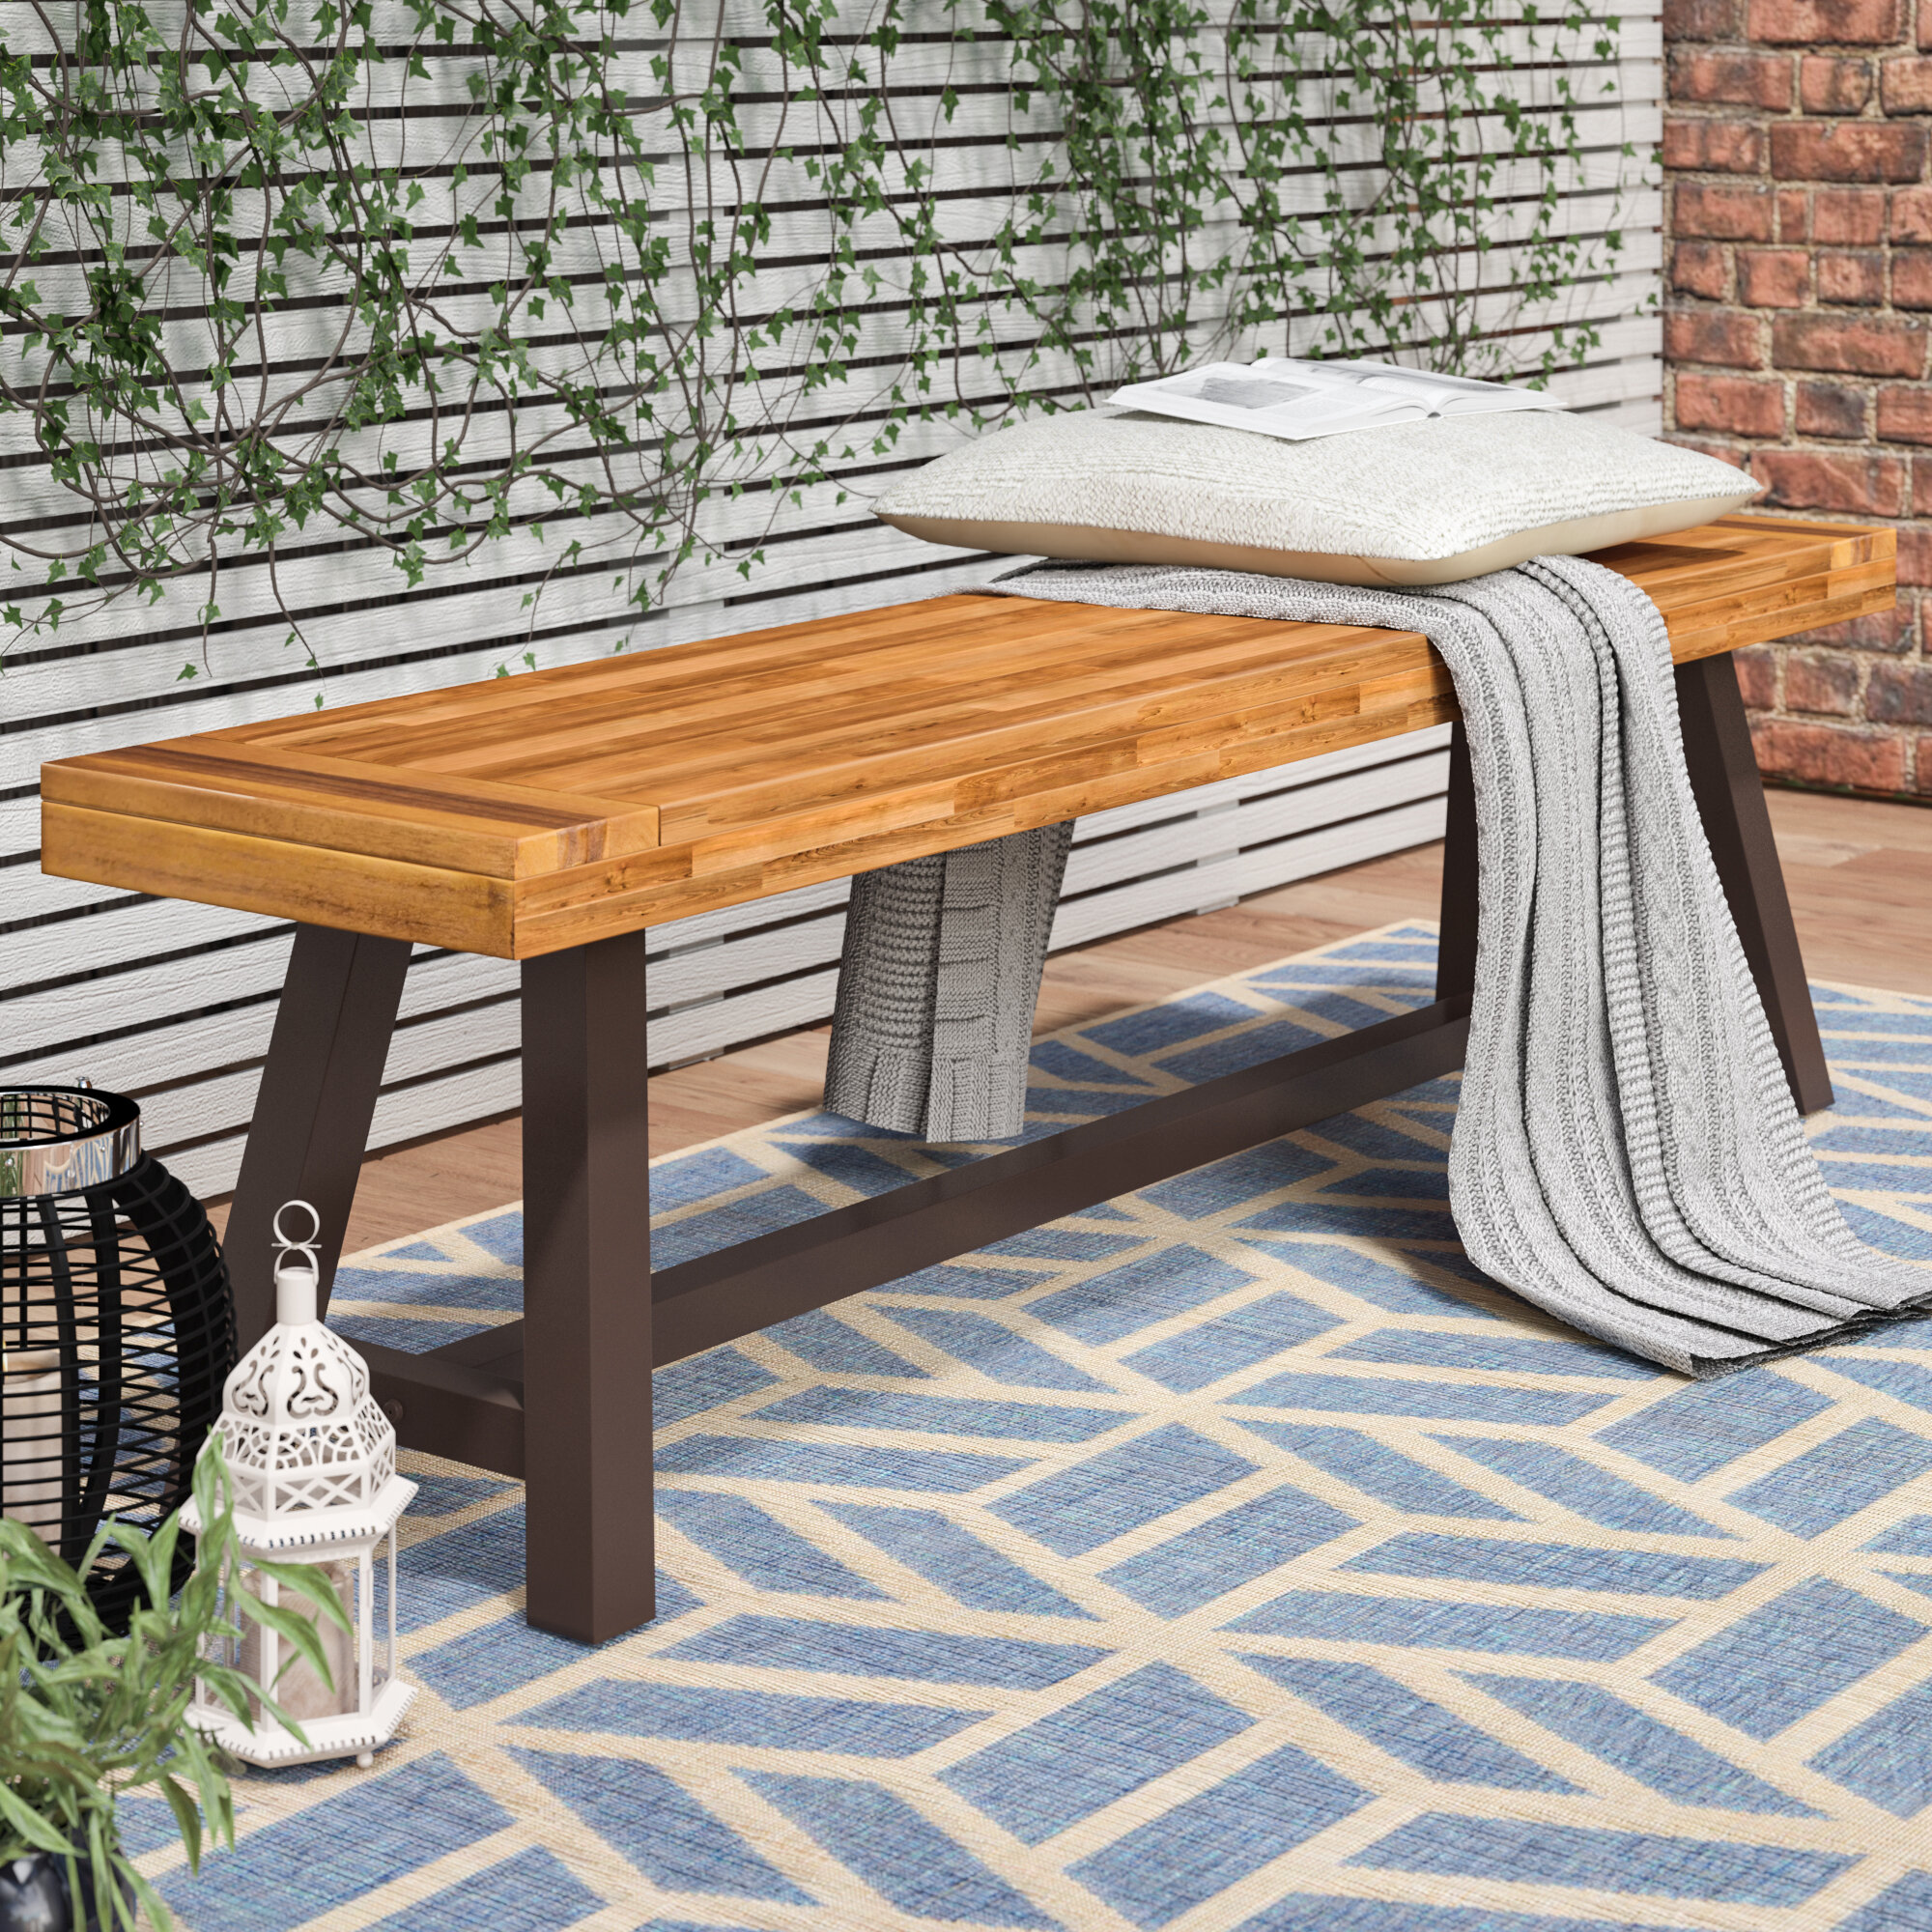 bench hardwood winsome solid garden tiles patio table benches set floor picnic and wooden diy looking outdoor for folding anadolukardiyolderg with ideas good separate